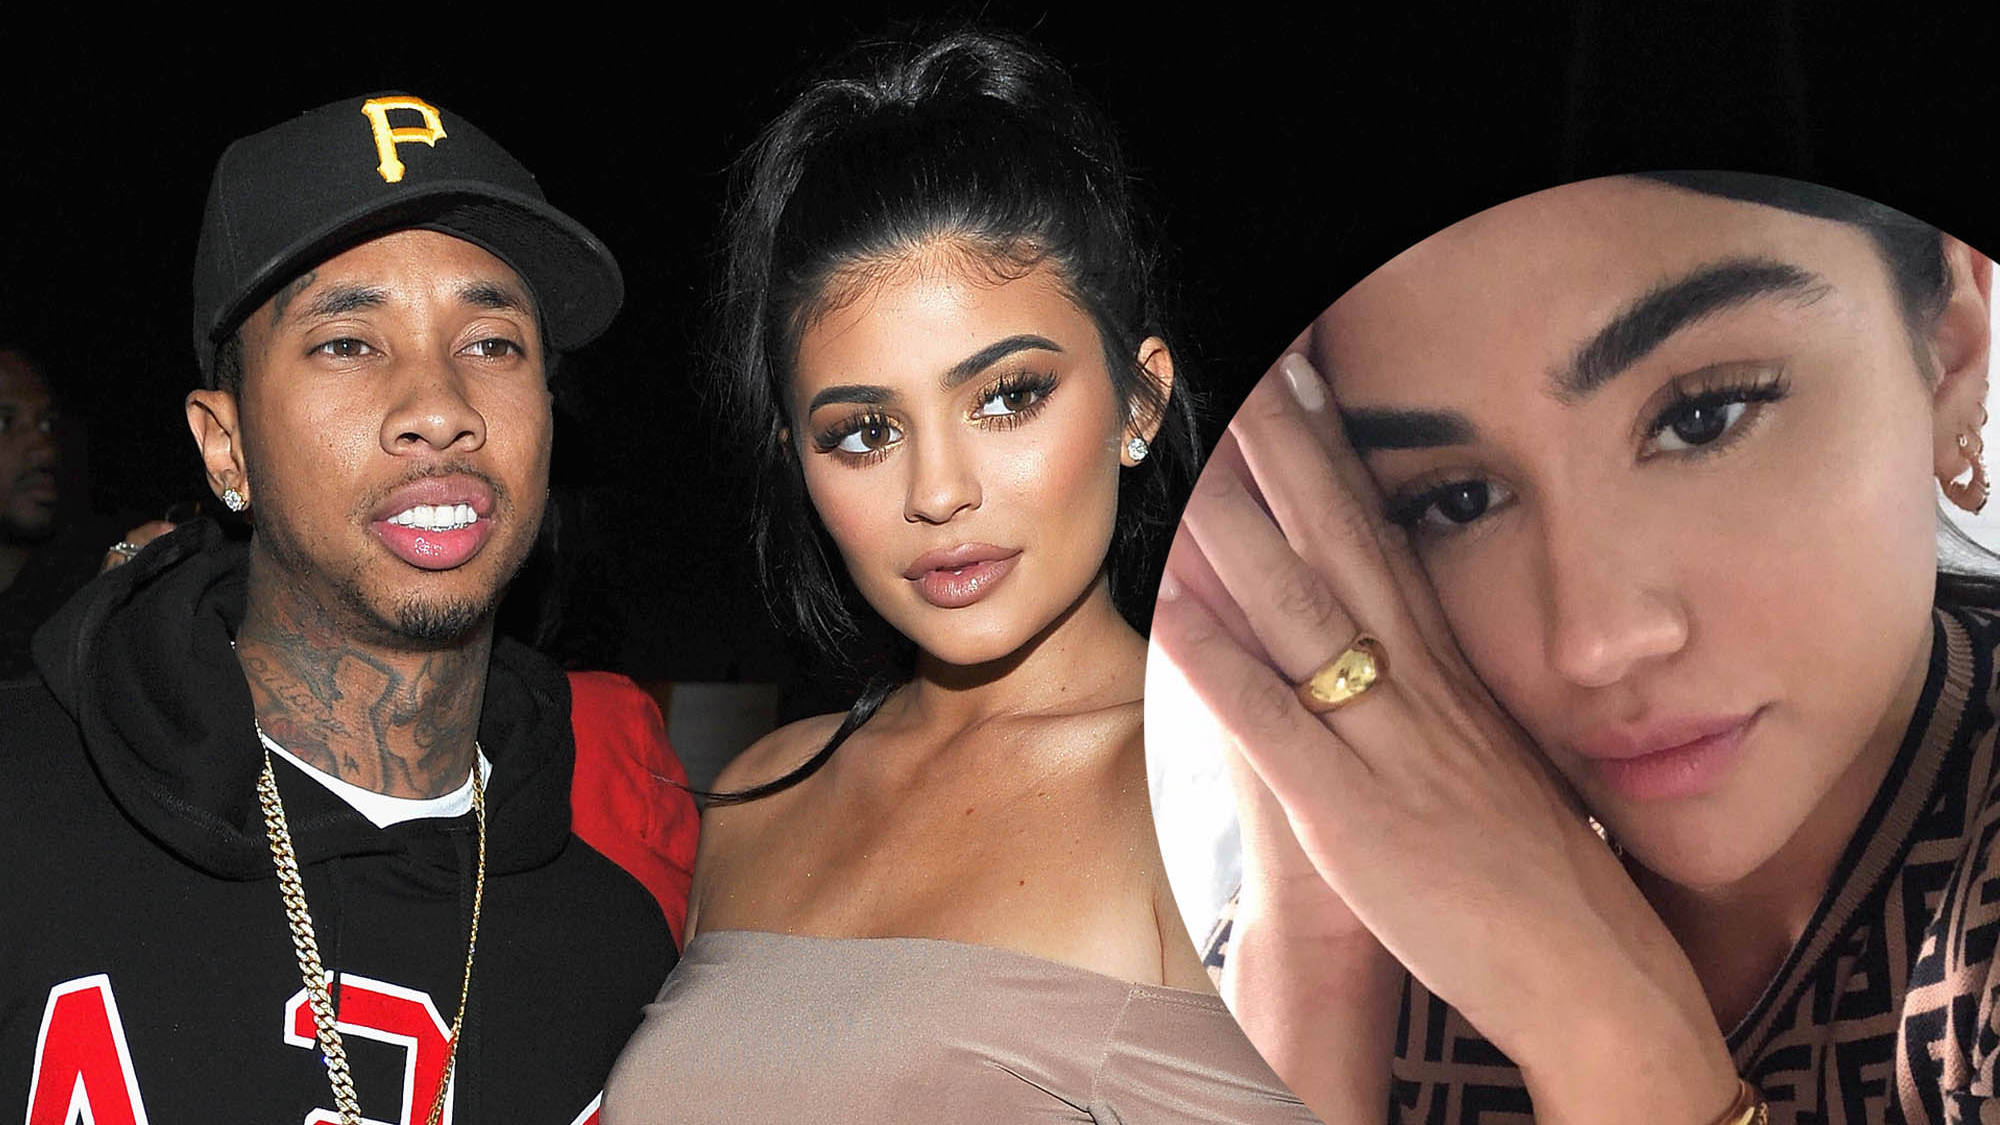 Tyga's rumoured new girlfriend trolled for being a 'Kylie Jenner look-a-like'